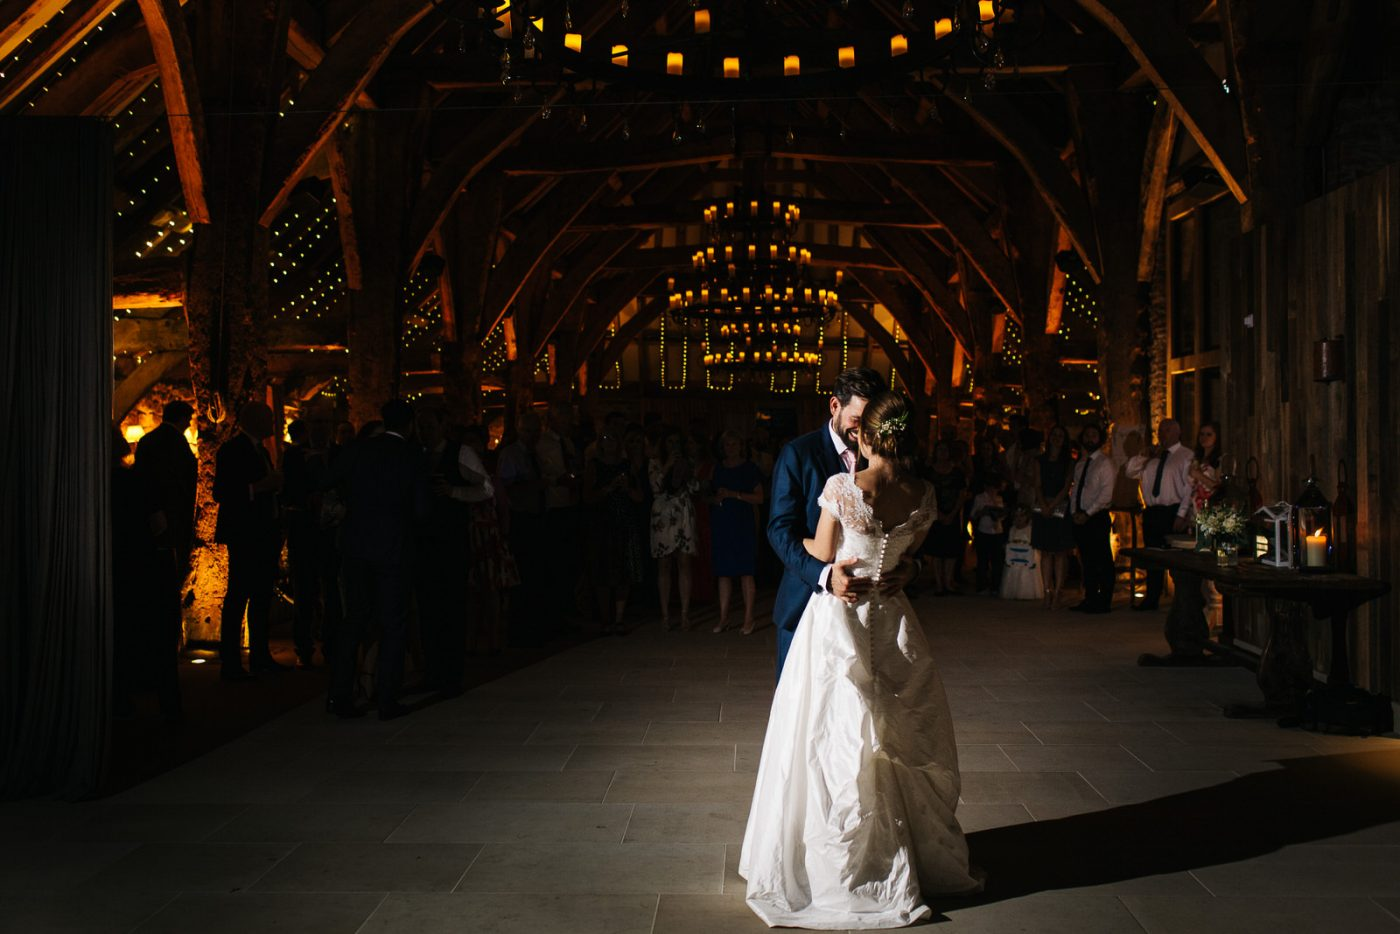 The Tithe Barn Wedding Venue